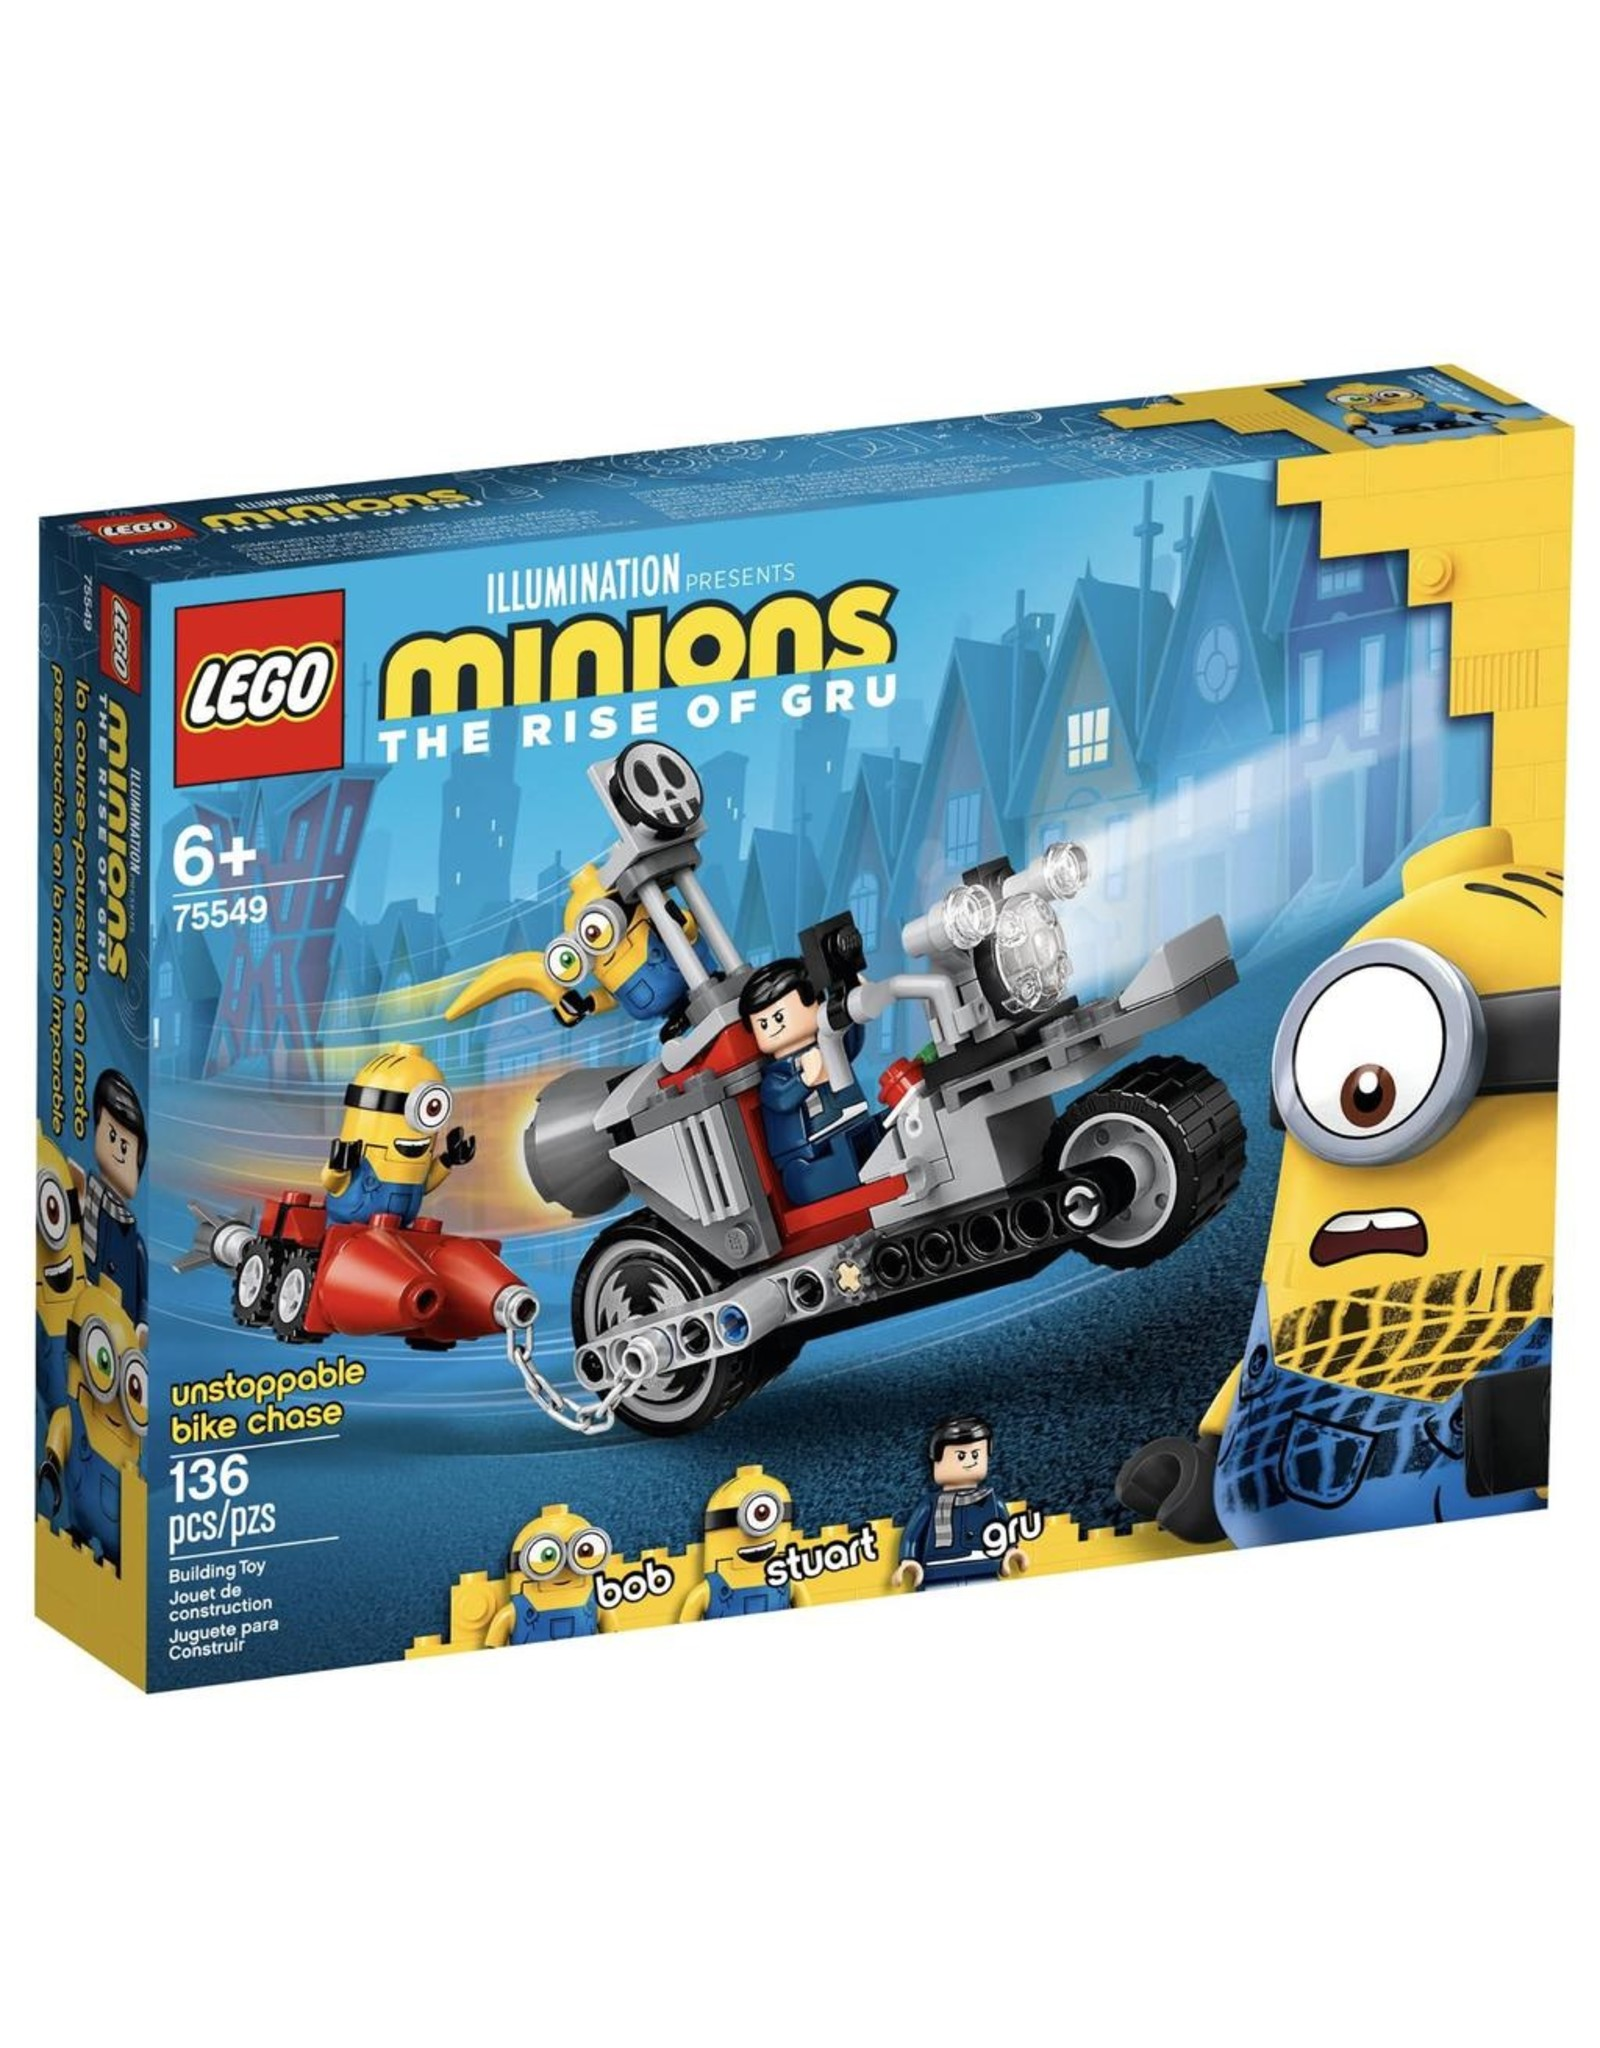 LEGO MINIONS THE RISE OF GRU 75549 UNSTOPPABLE BIKE CHASE